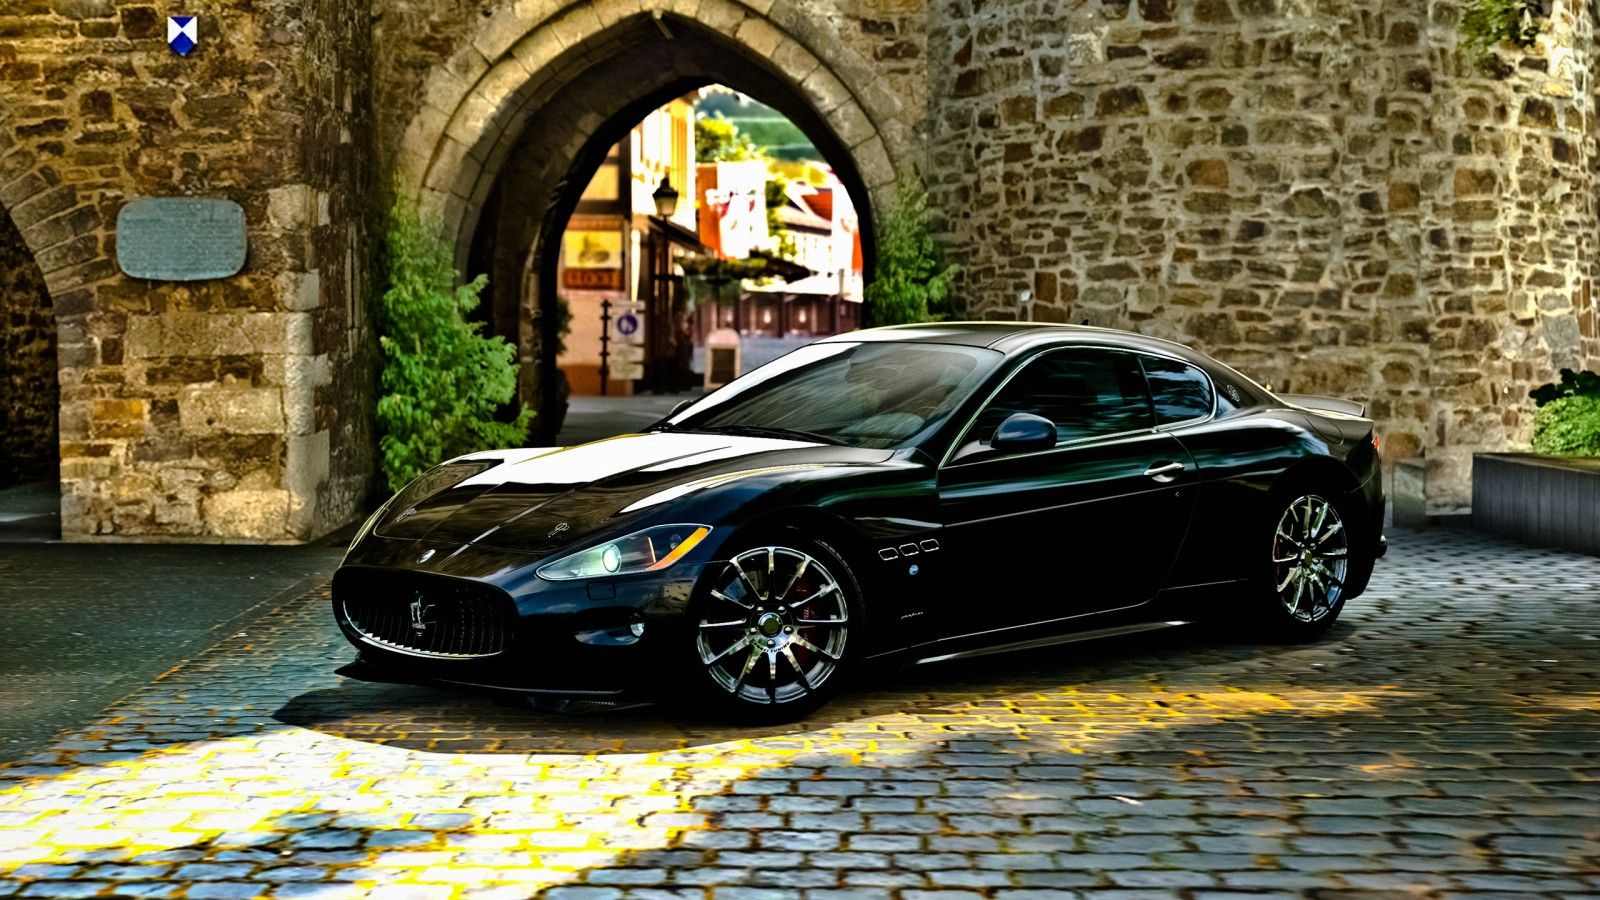 Car Wallpapers 4k Bentely Maserati Granturismo Wallpaper Hd Car Wallpapers Id 3941